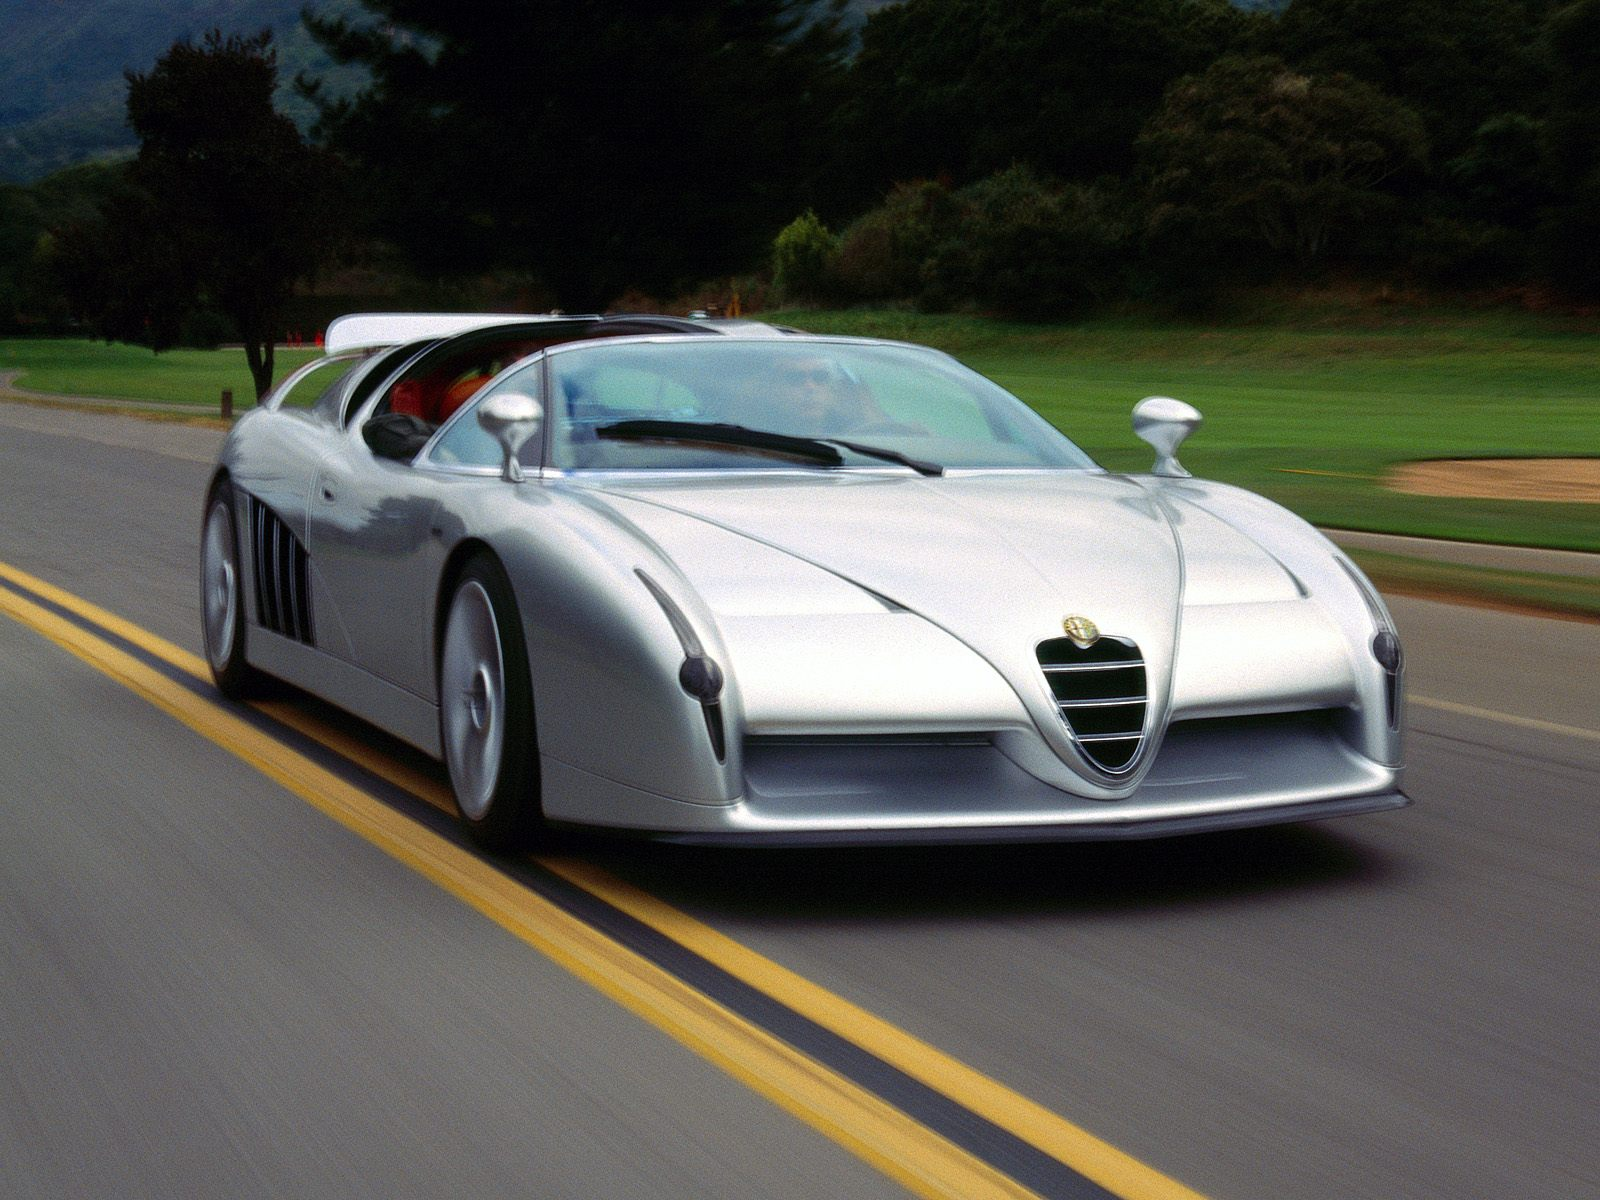 Alfa romeo scighera photo - 1